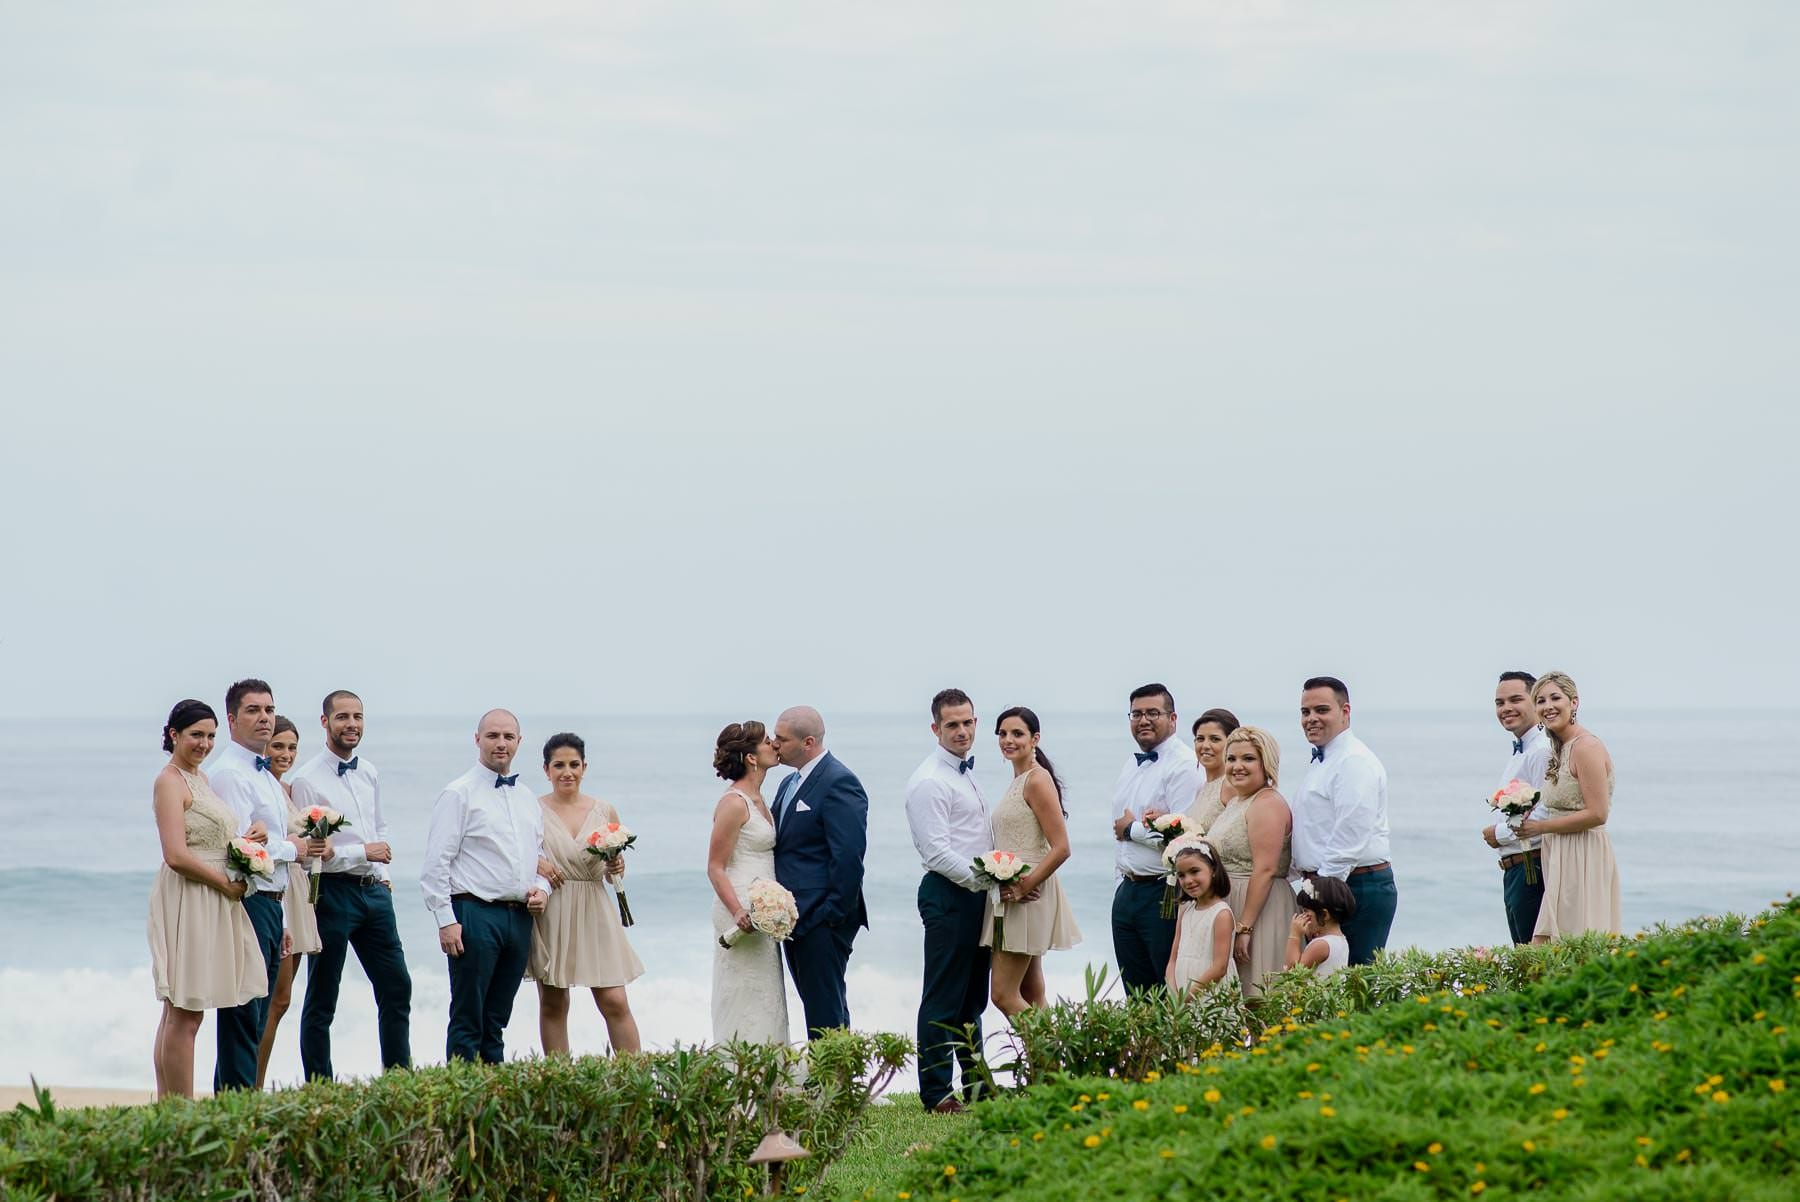 wedding-photos-pueblo-bonito-sunset-beach-4582